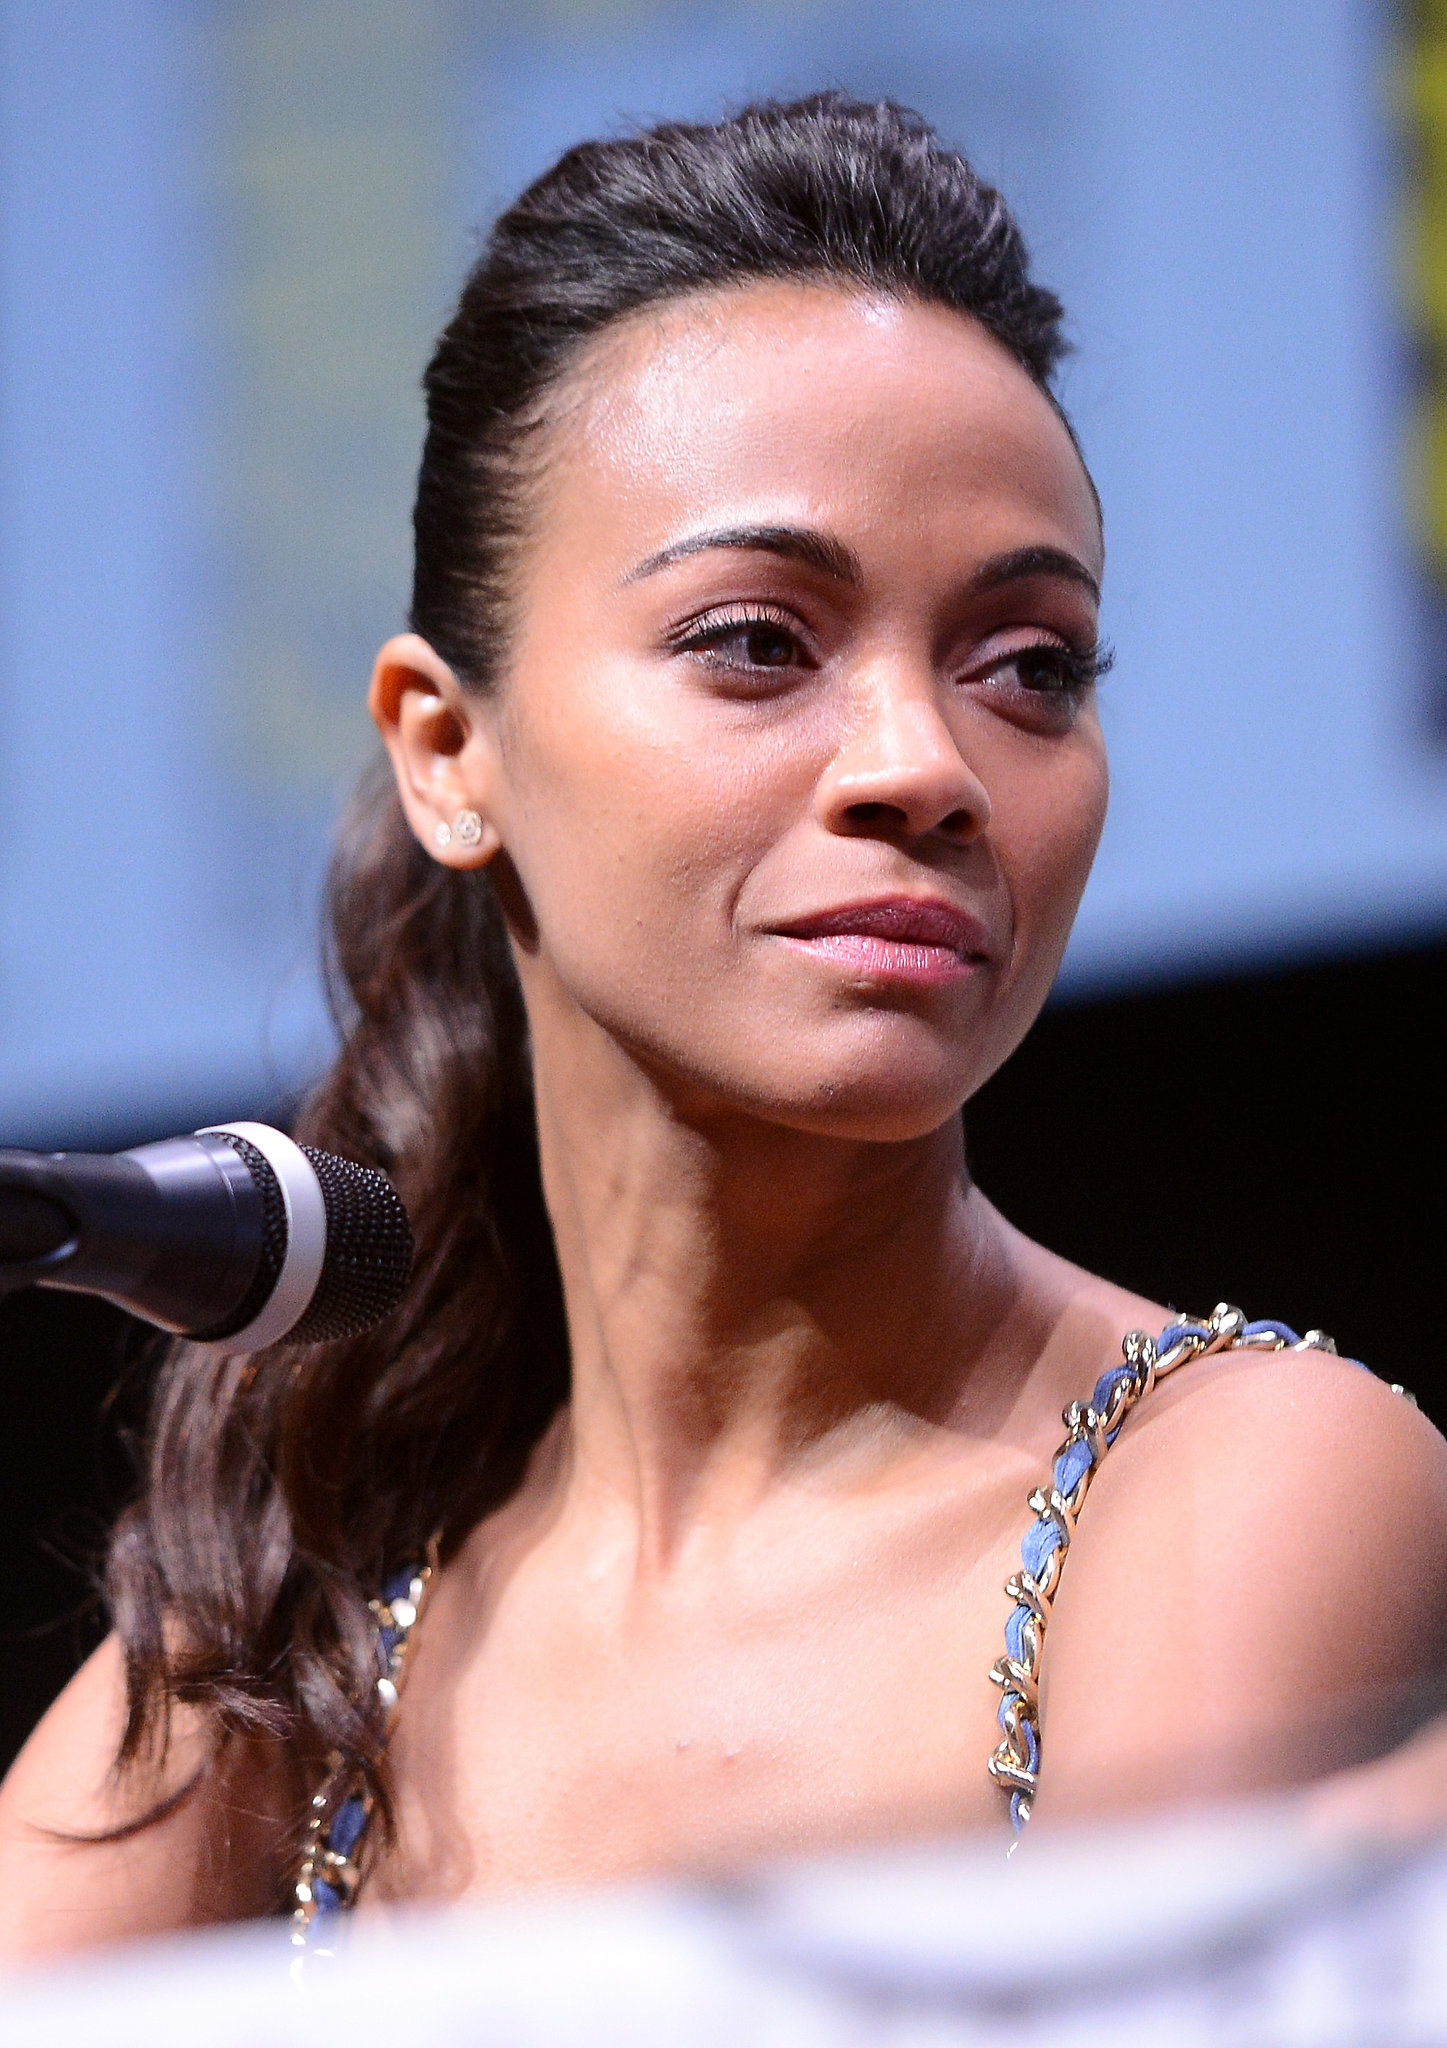 Zoe Saldana's high-volume ponytail and pink lipstick gave off a seriously edgy vibe at the panel for Marvel Studios.